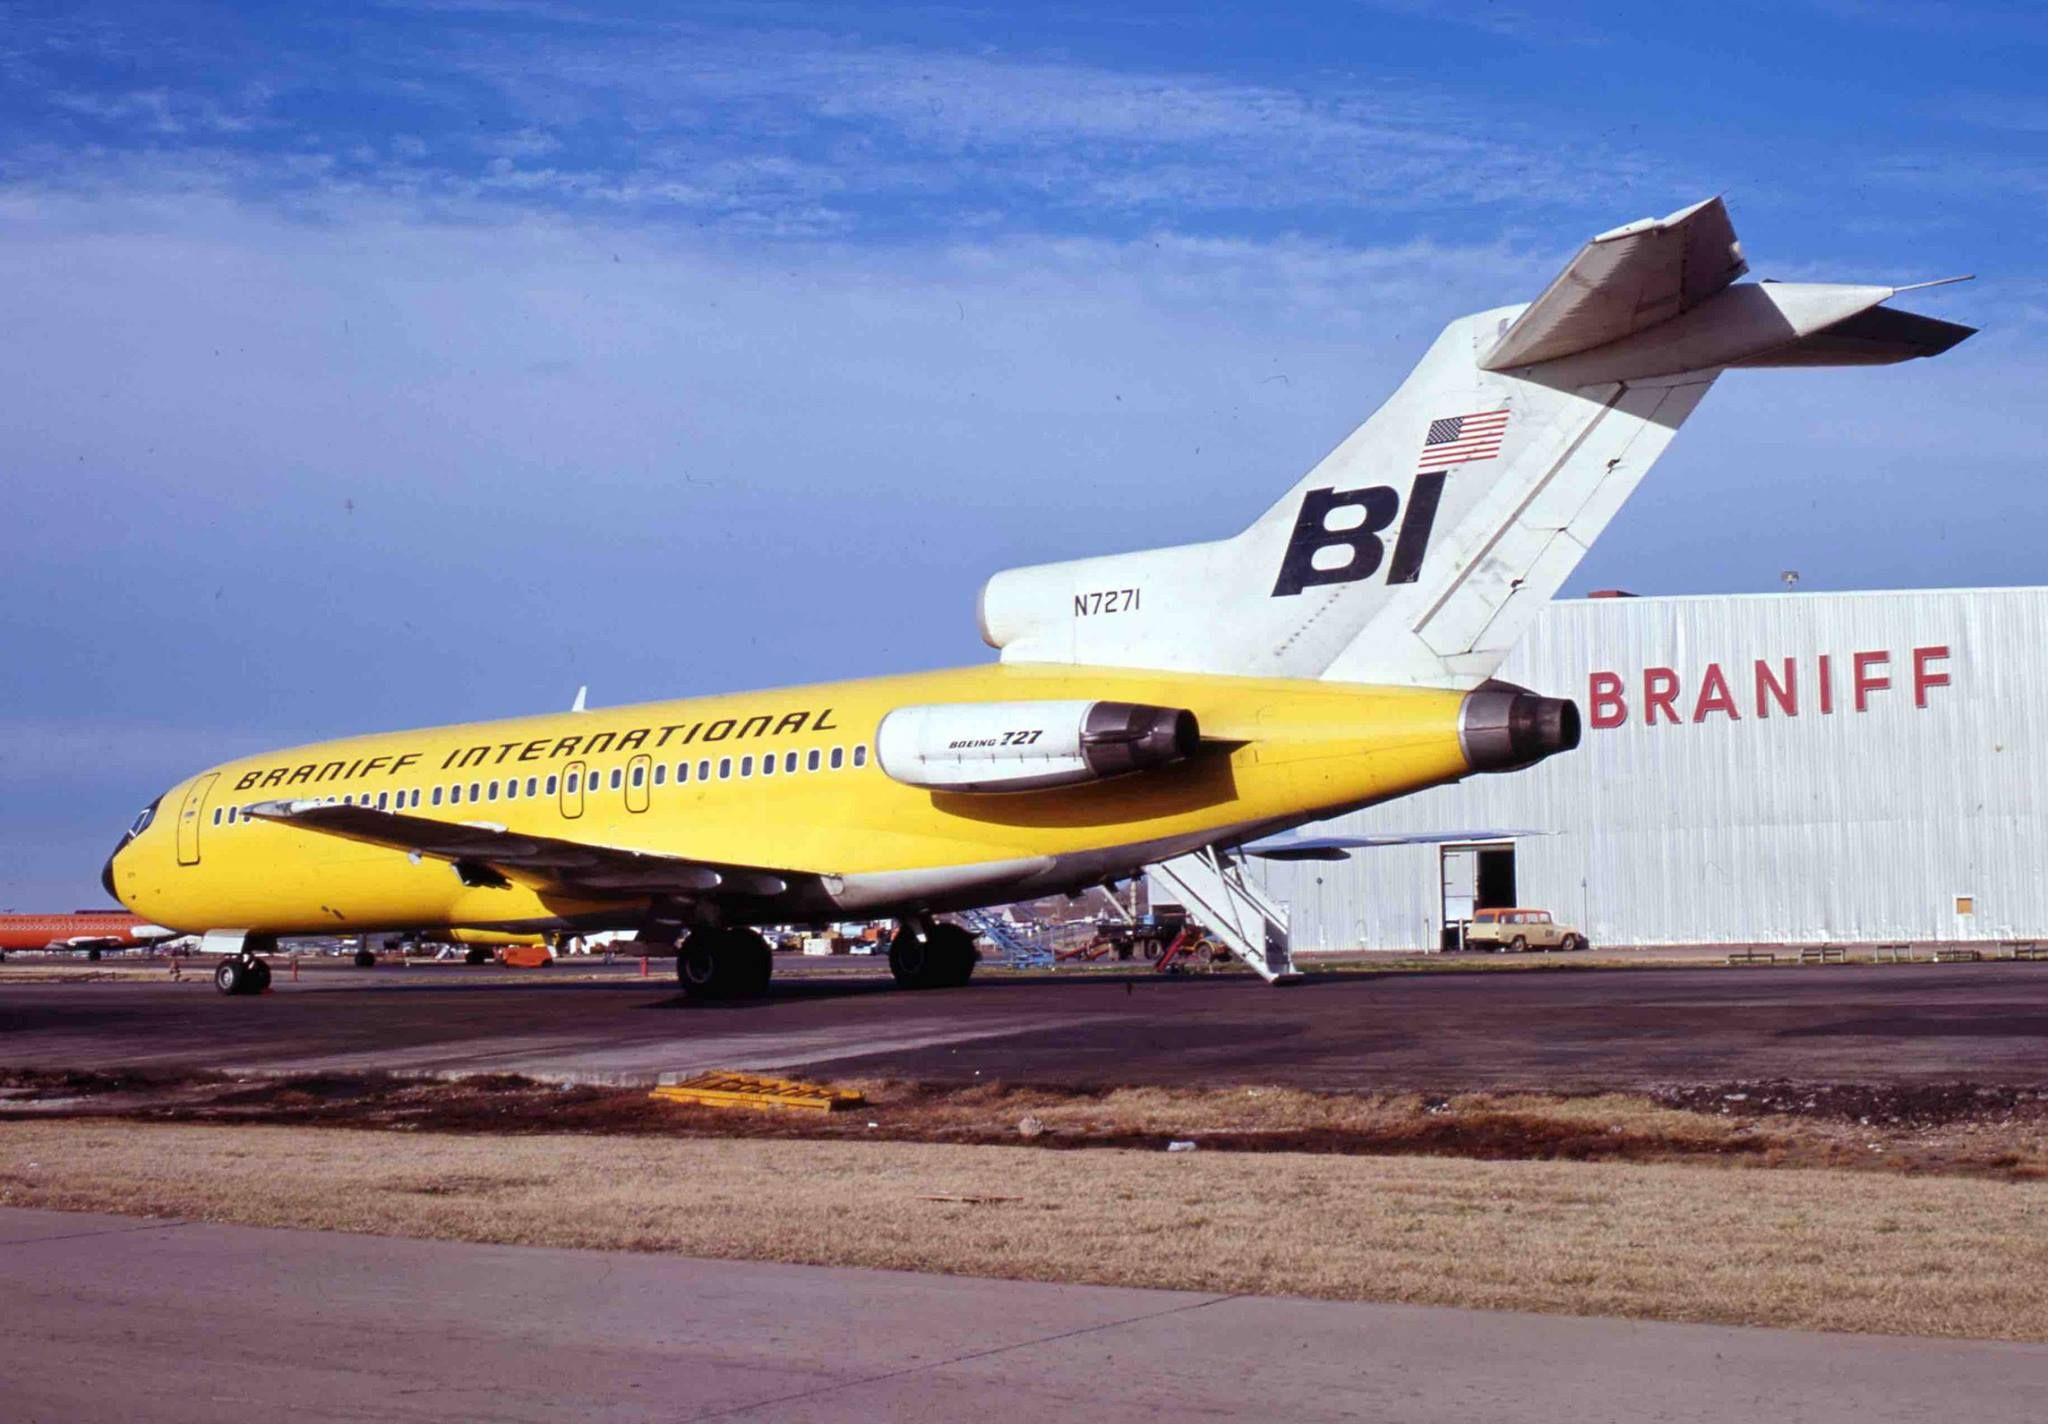 On December 2, 1966, Braniff International inaugurated the